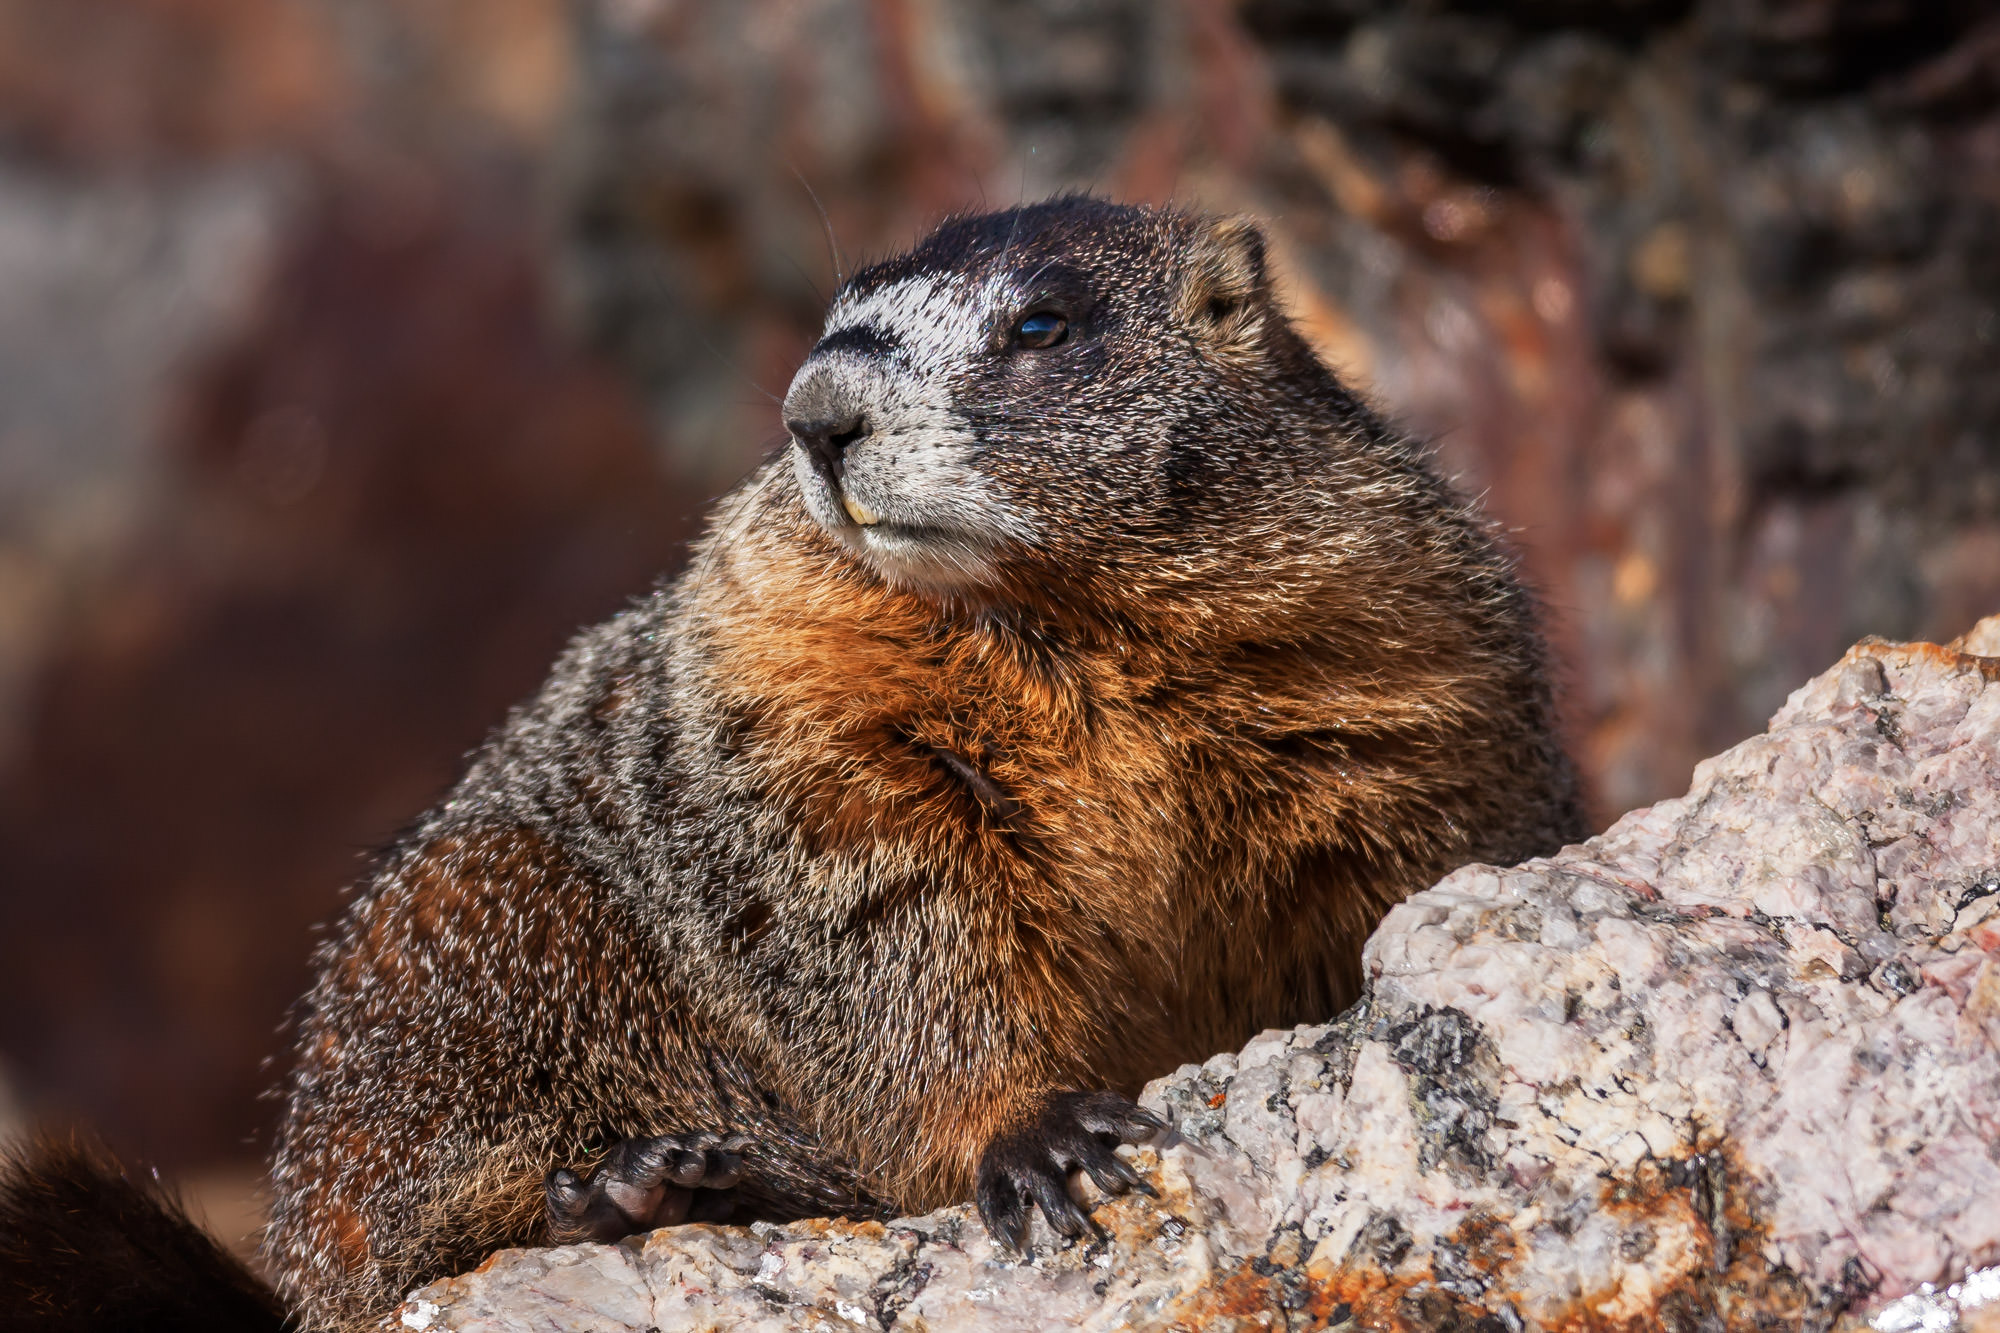 Marmot, Colorado, Rocky Mountain, limited edition, photograph, fine art, wildlife, photo